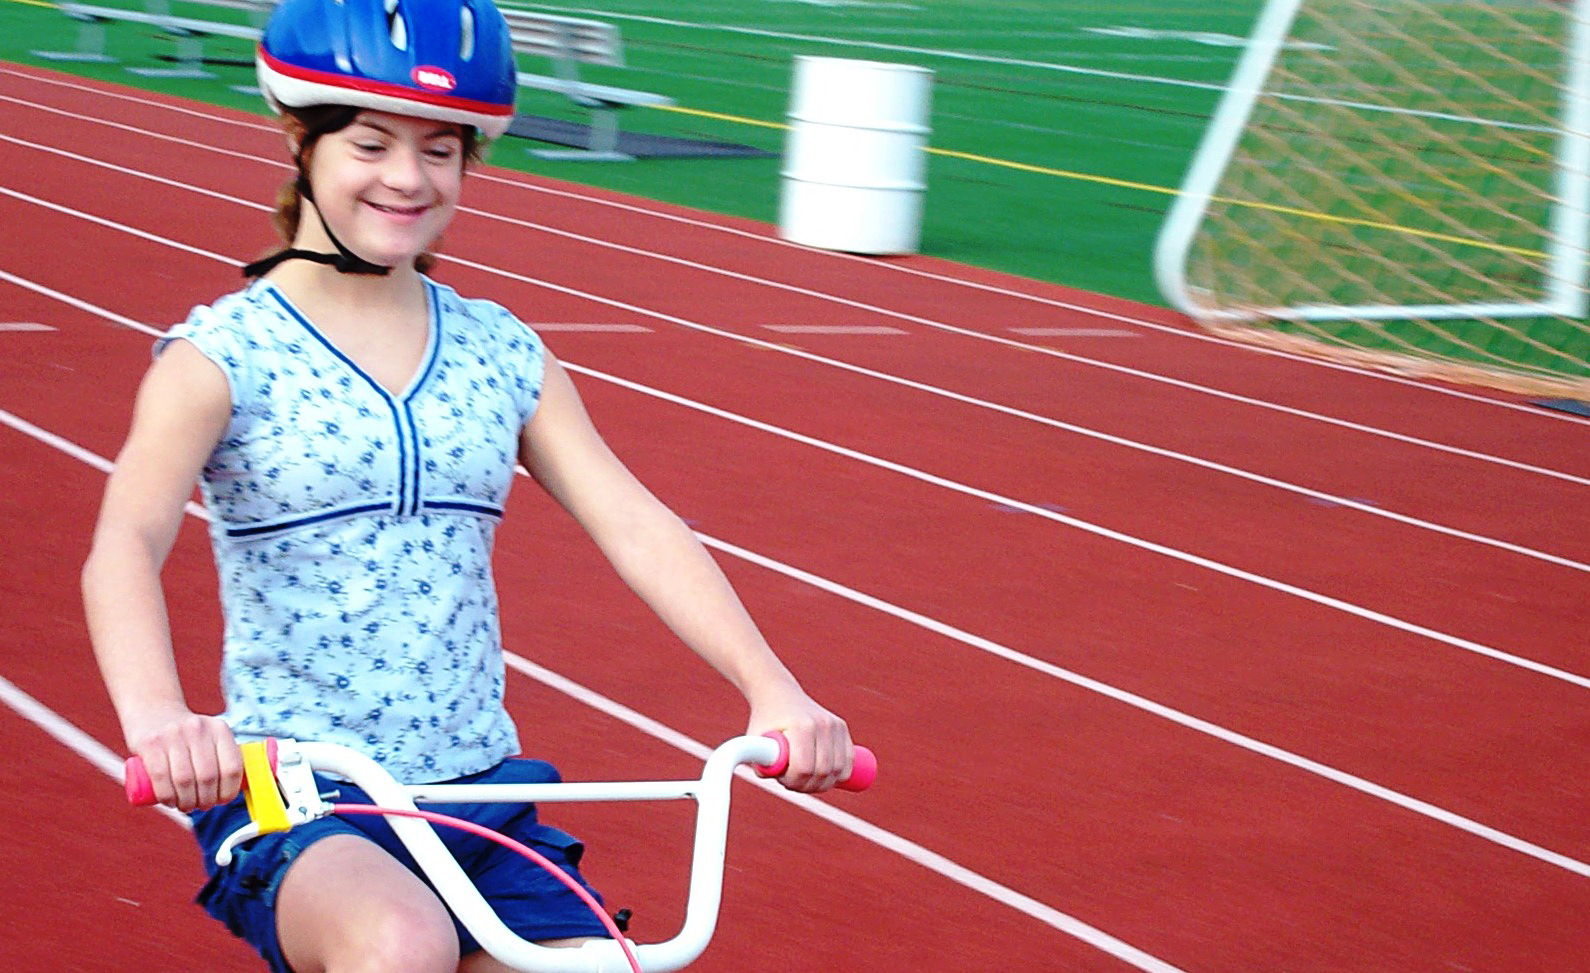 Down syndrome and physical therapy - Kids With Down Syndrome Who Bike Ride Are Less Sedentary Overall